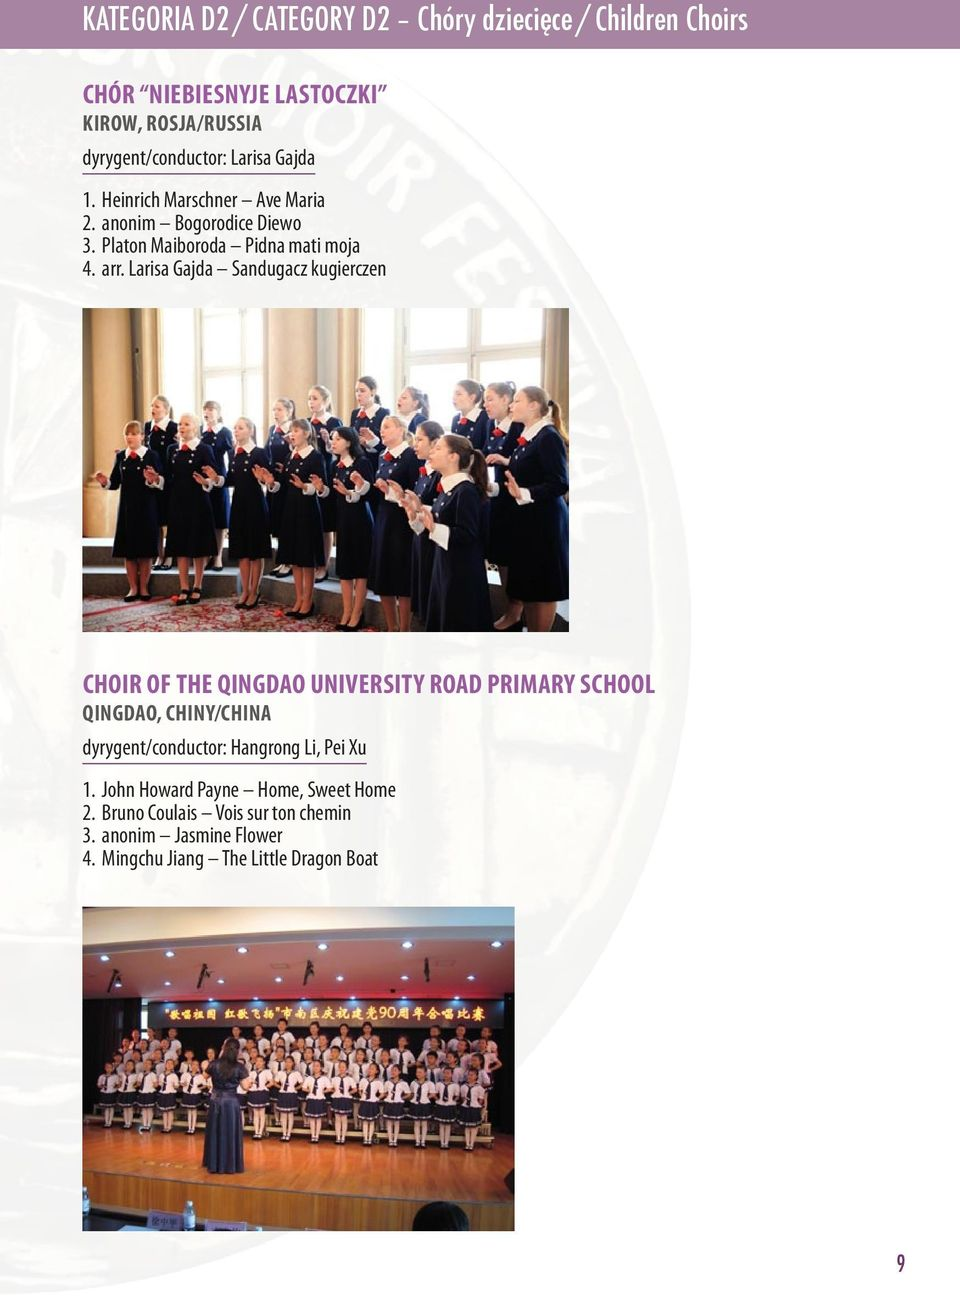 Larisa Gajda Sandugacz kugierczen CHOIR OF the QINGDAO UNiverSity ROAD PRIMary SCHOOL QINGDAO, CHINY/CHINA dyrygent/conductor: